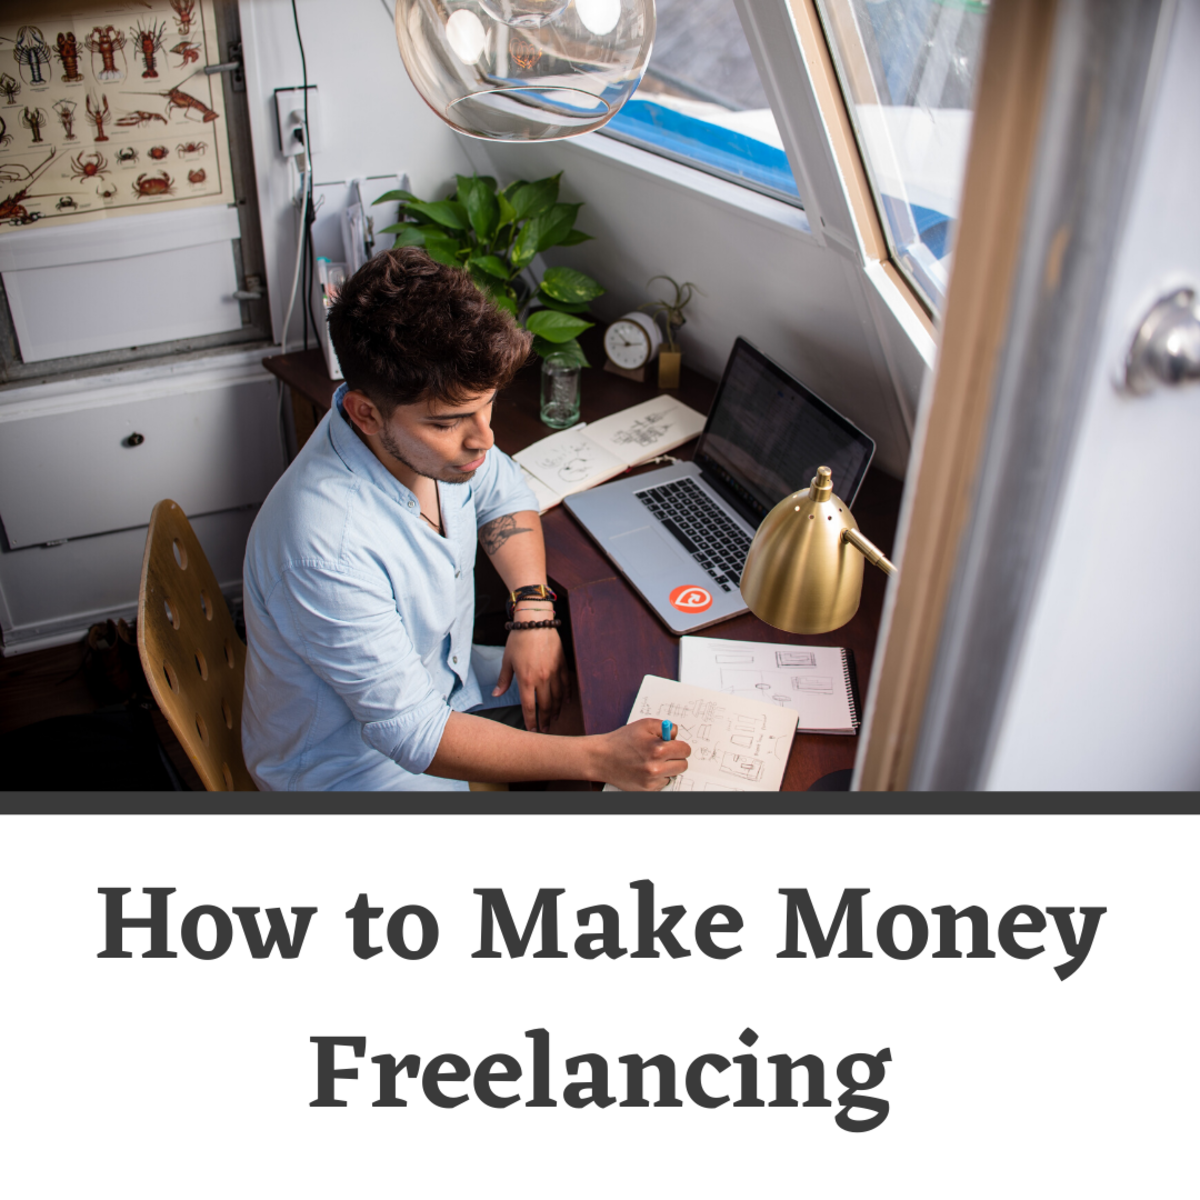 How to Make Money Freelancing—Legitimate Methods to Earn Income From Home